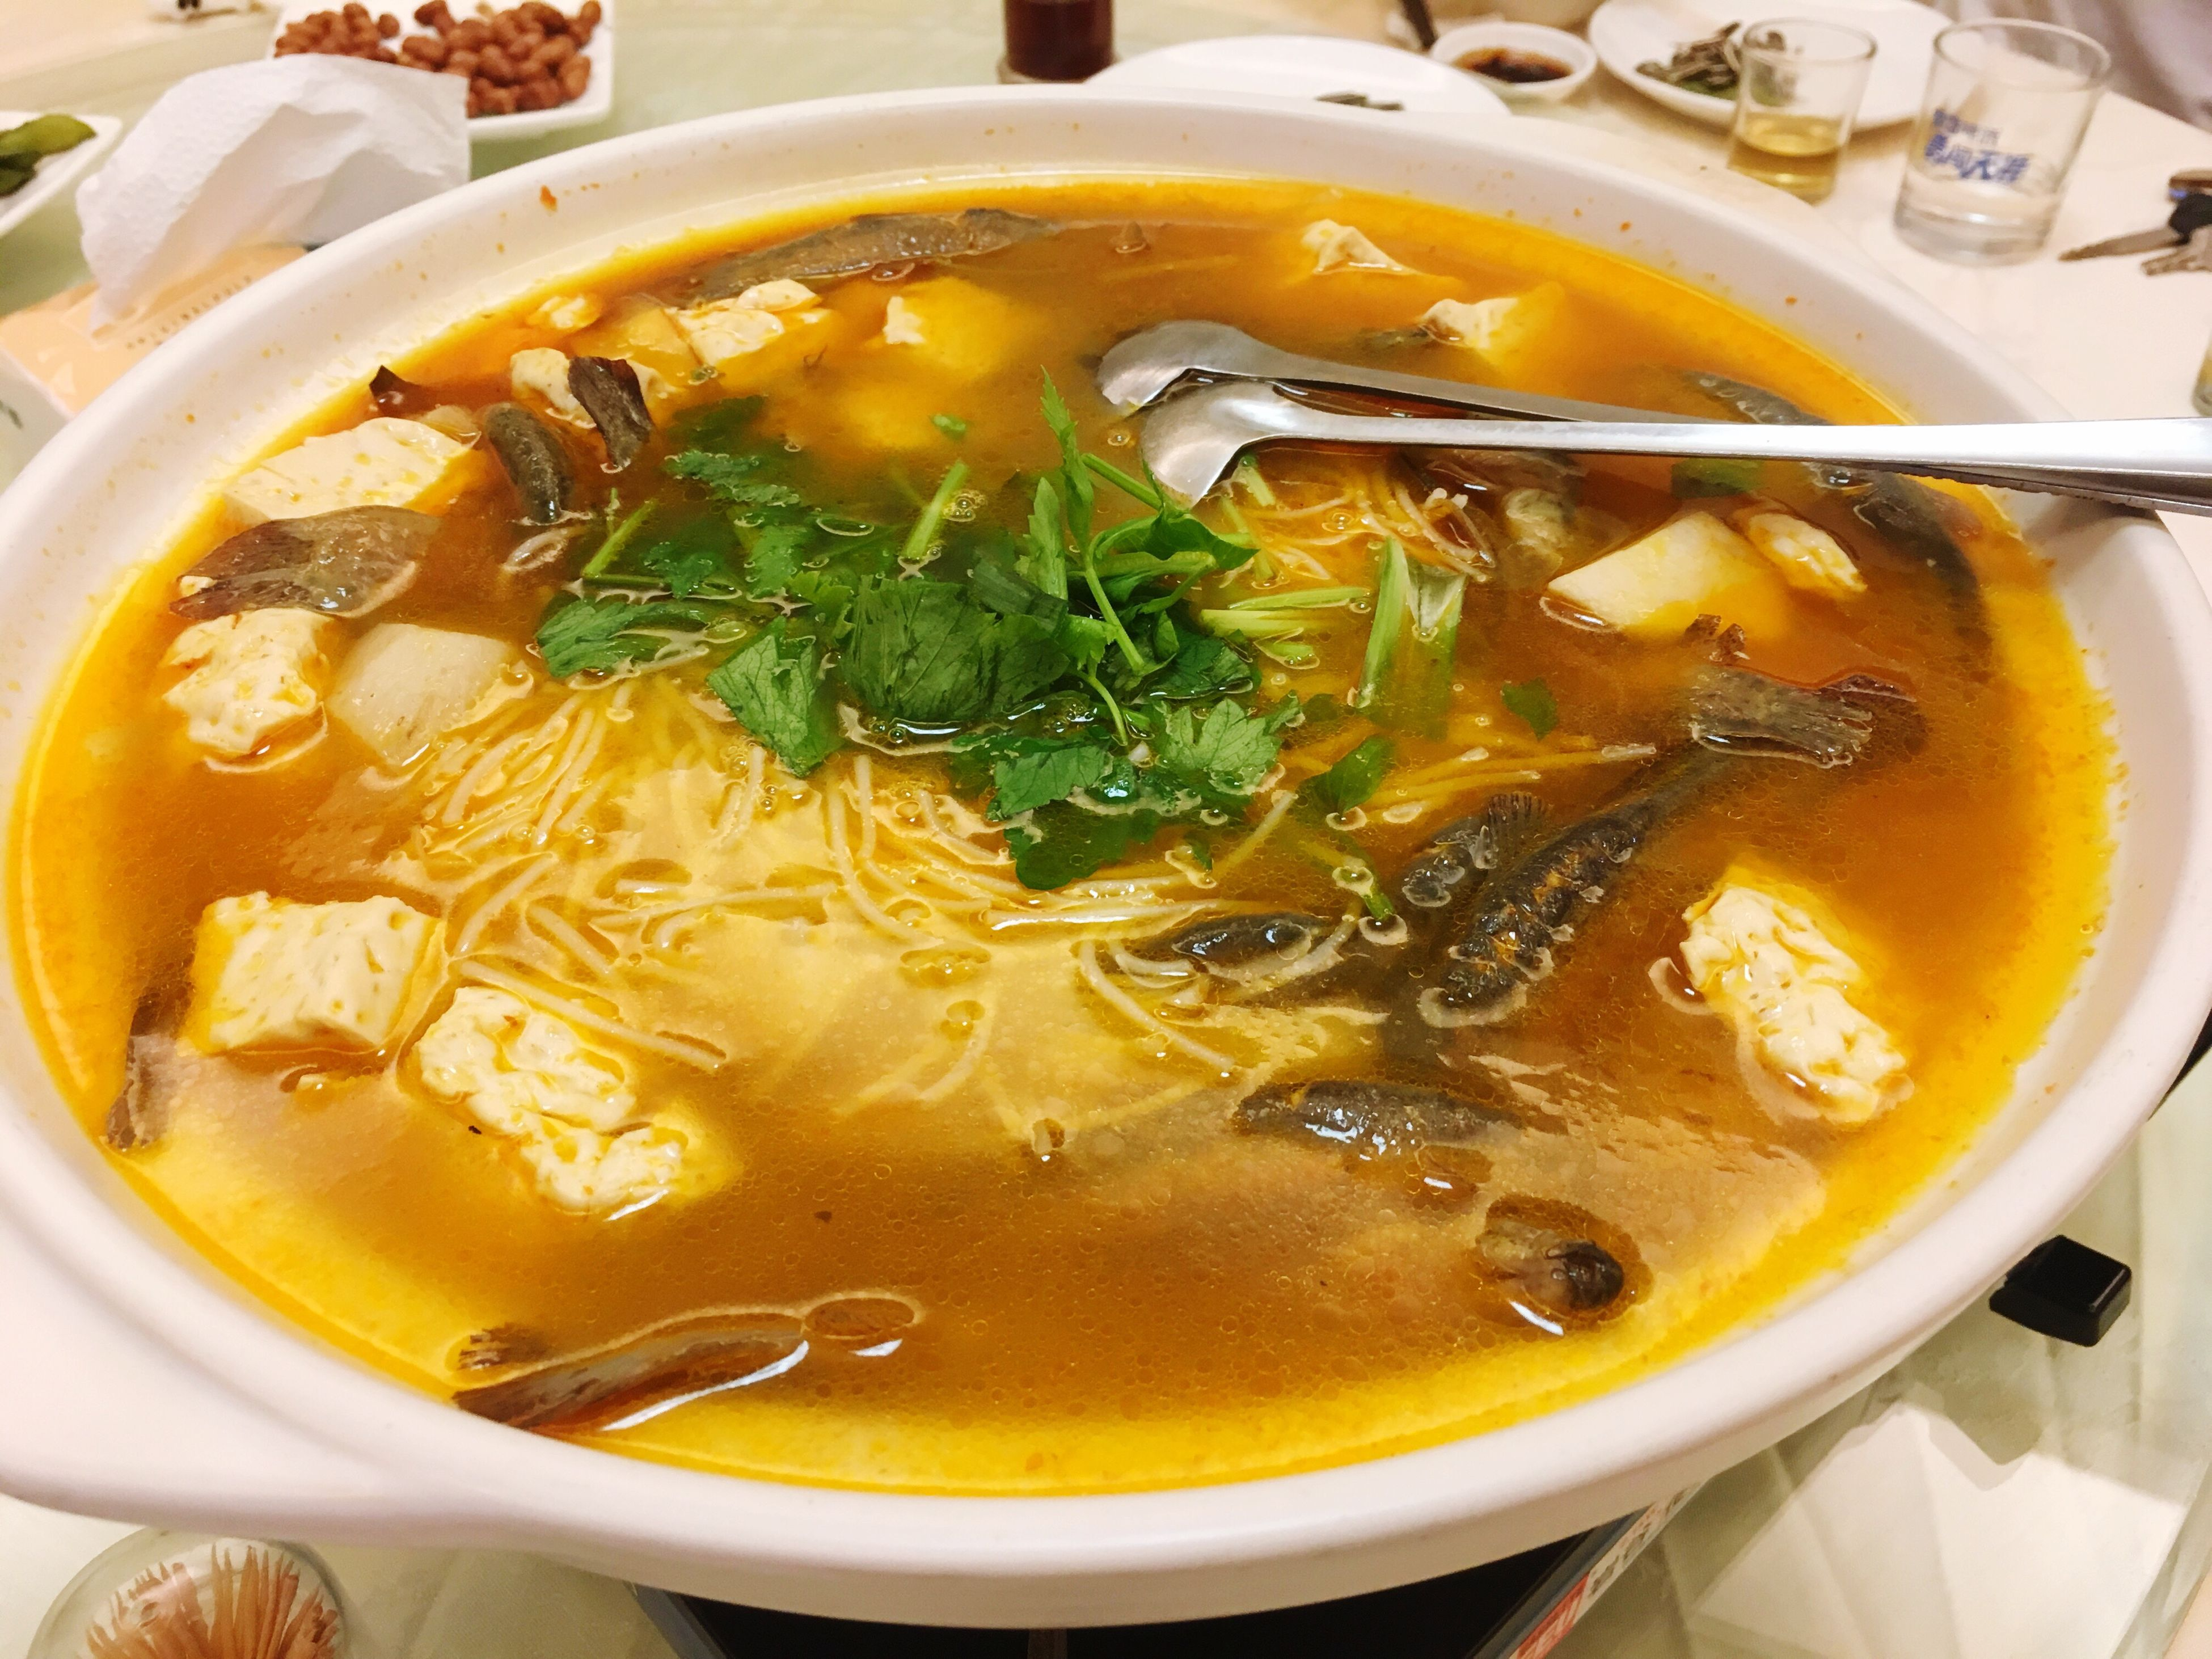 soup, food and drink, bowl, freshness, food, close-up, noodle soup, healthy eating, table, soup bowl, refreshment, no people, drink, ready-to-eat, indoors, vegetable soup, day